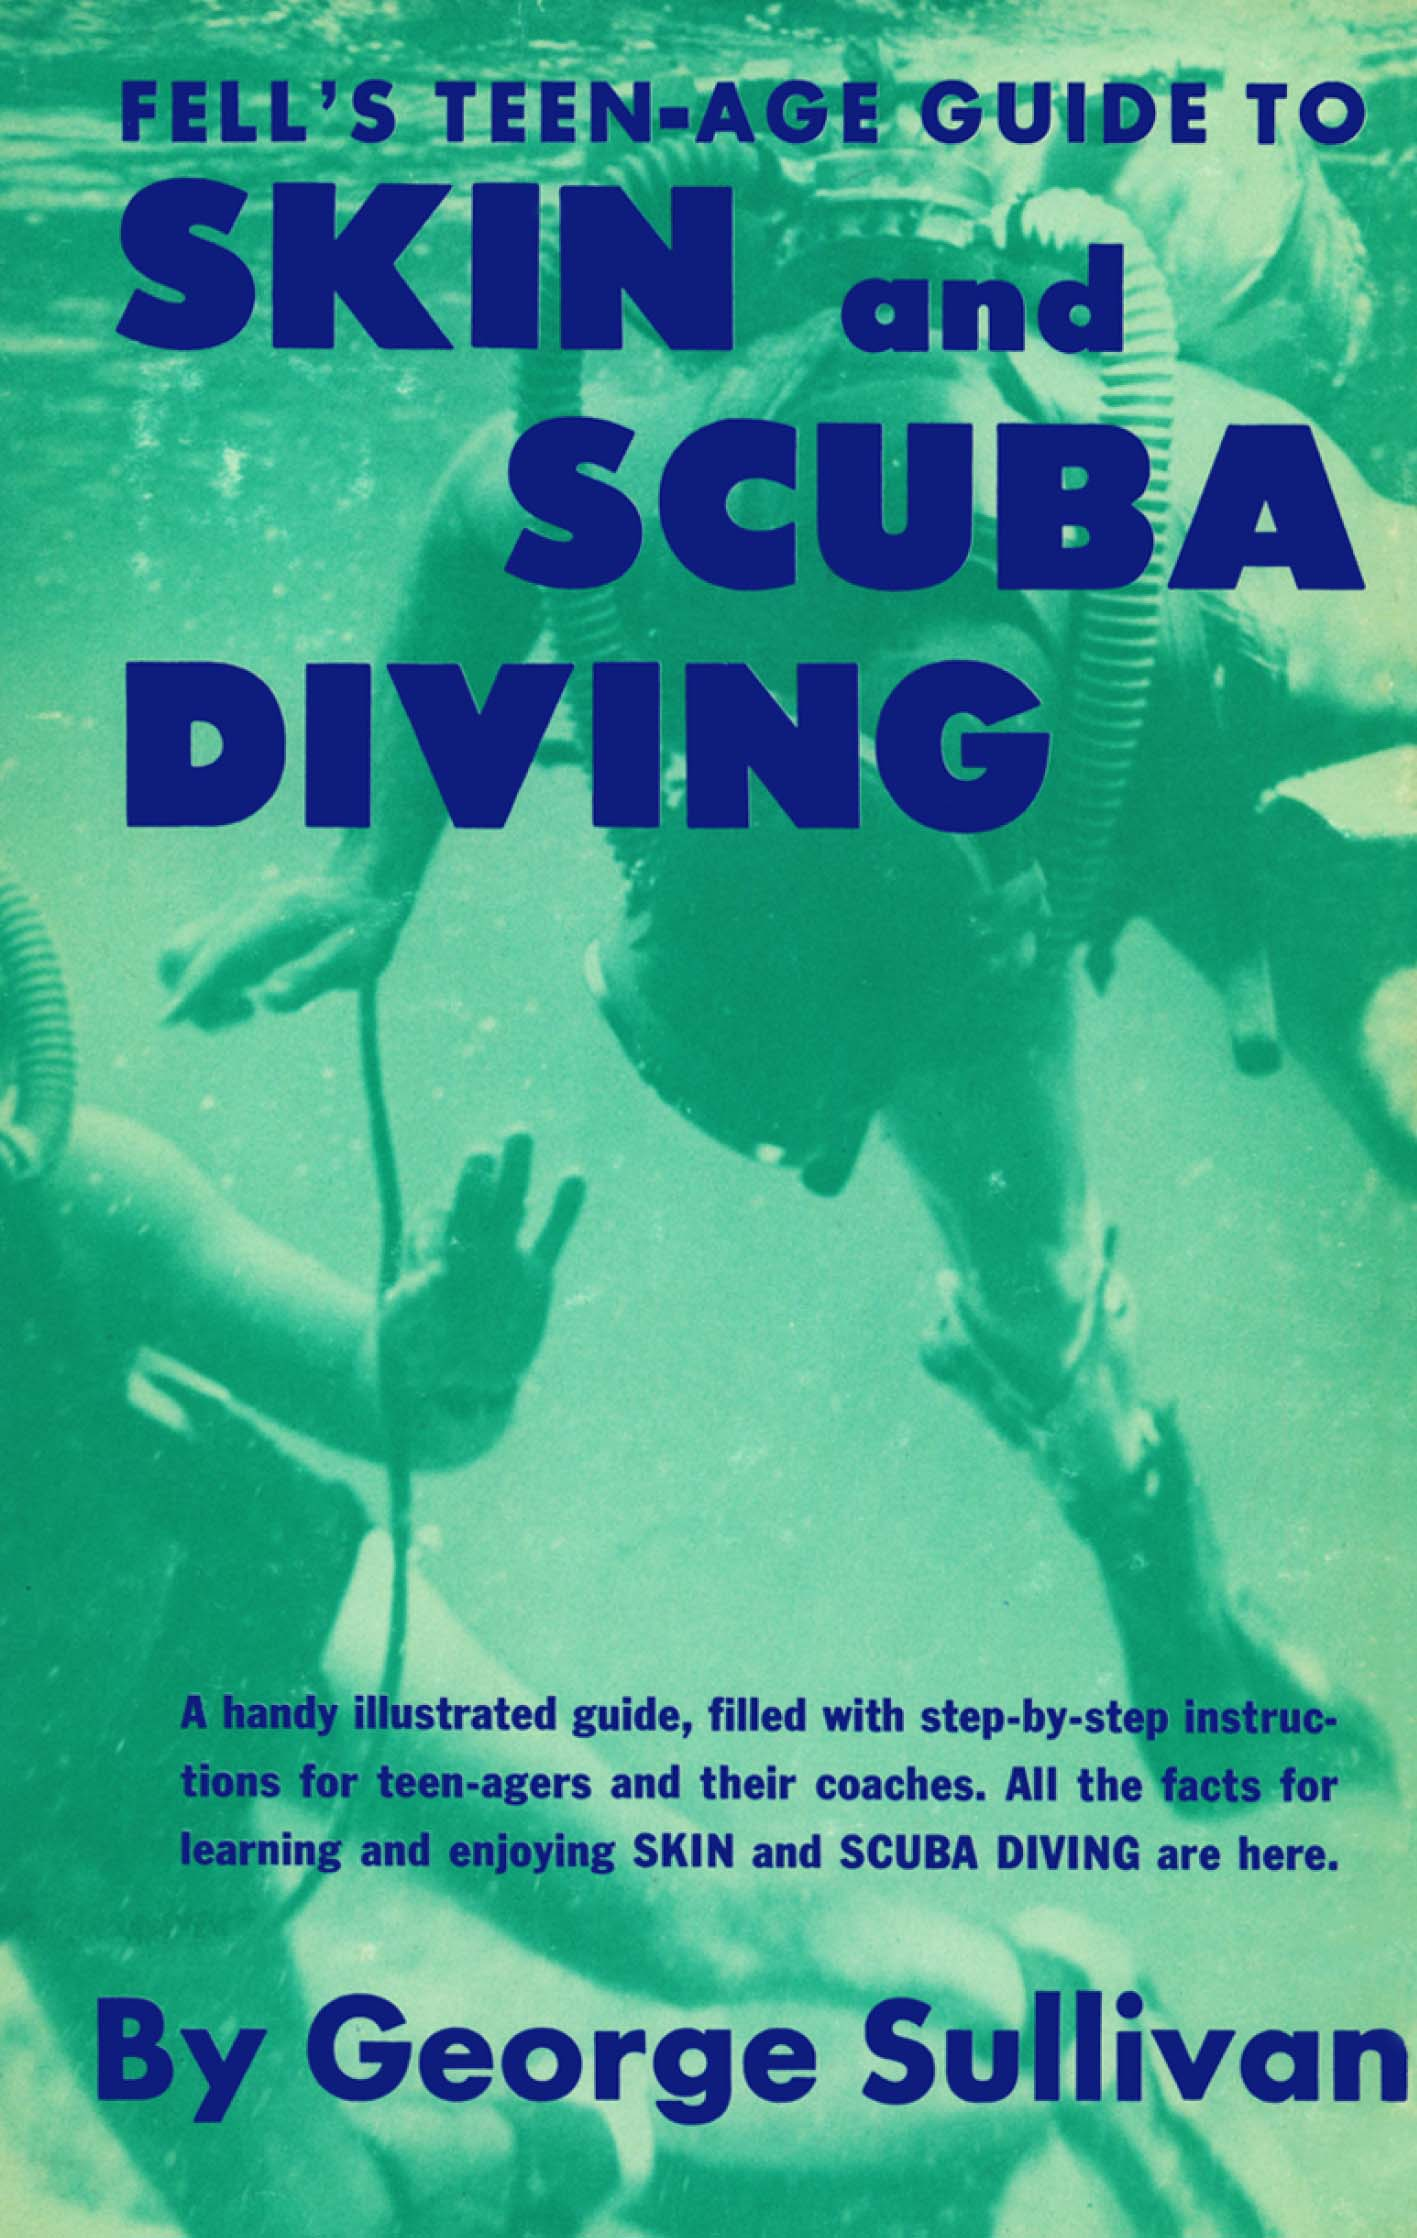 Fell's Teen-age Guide to Skin and Scuba Diving